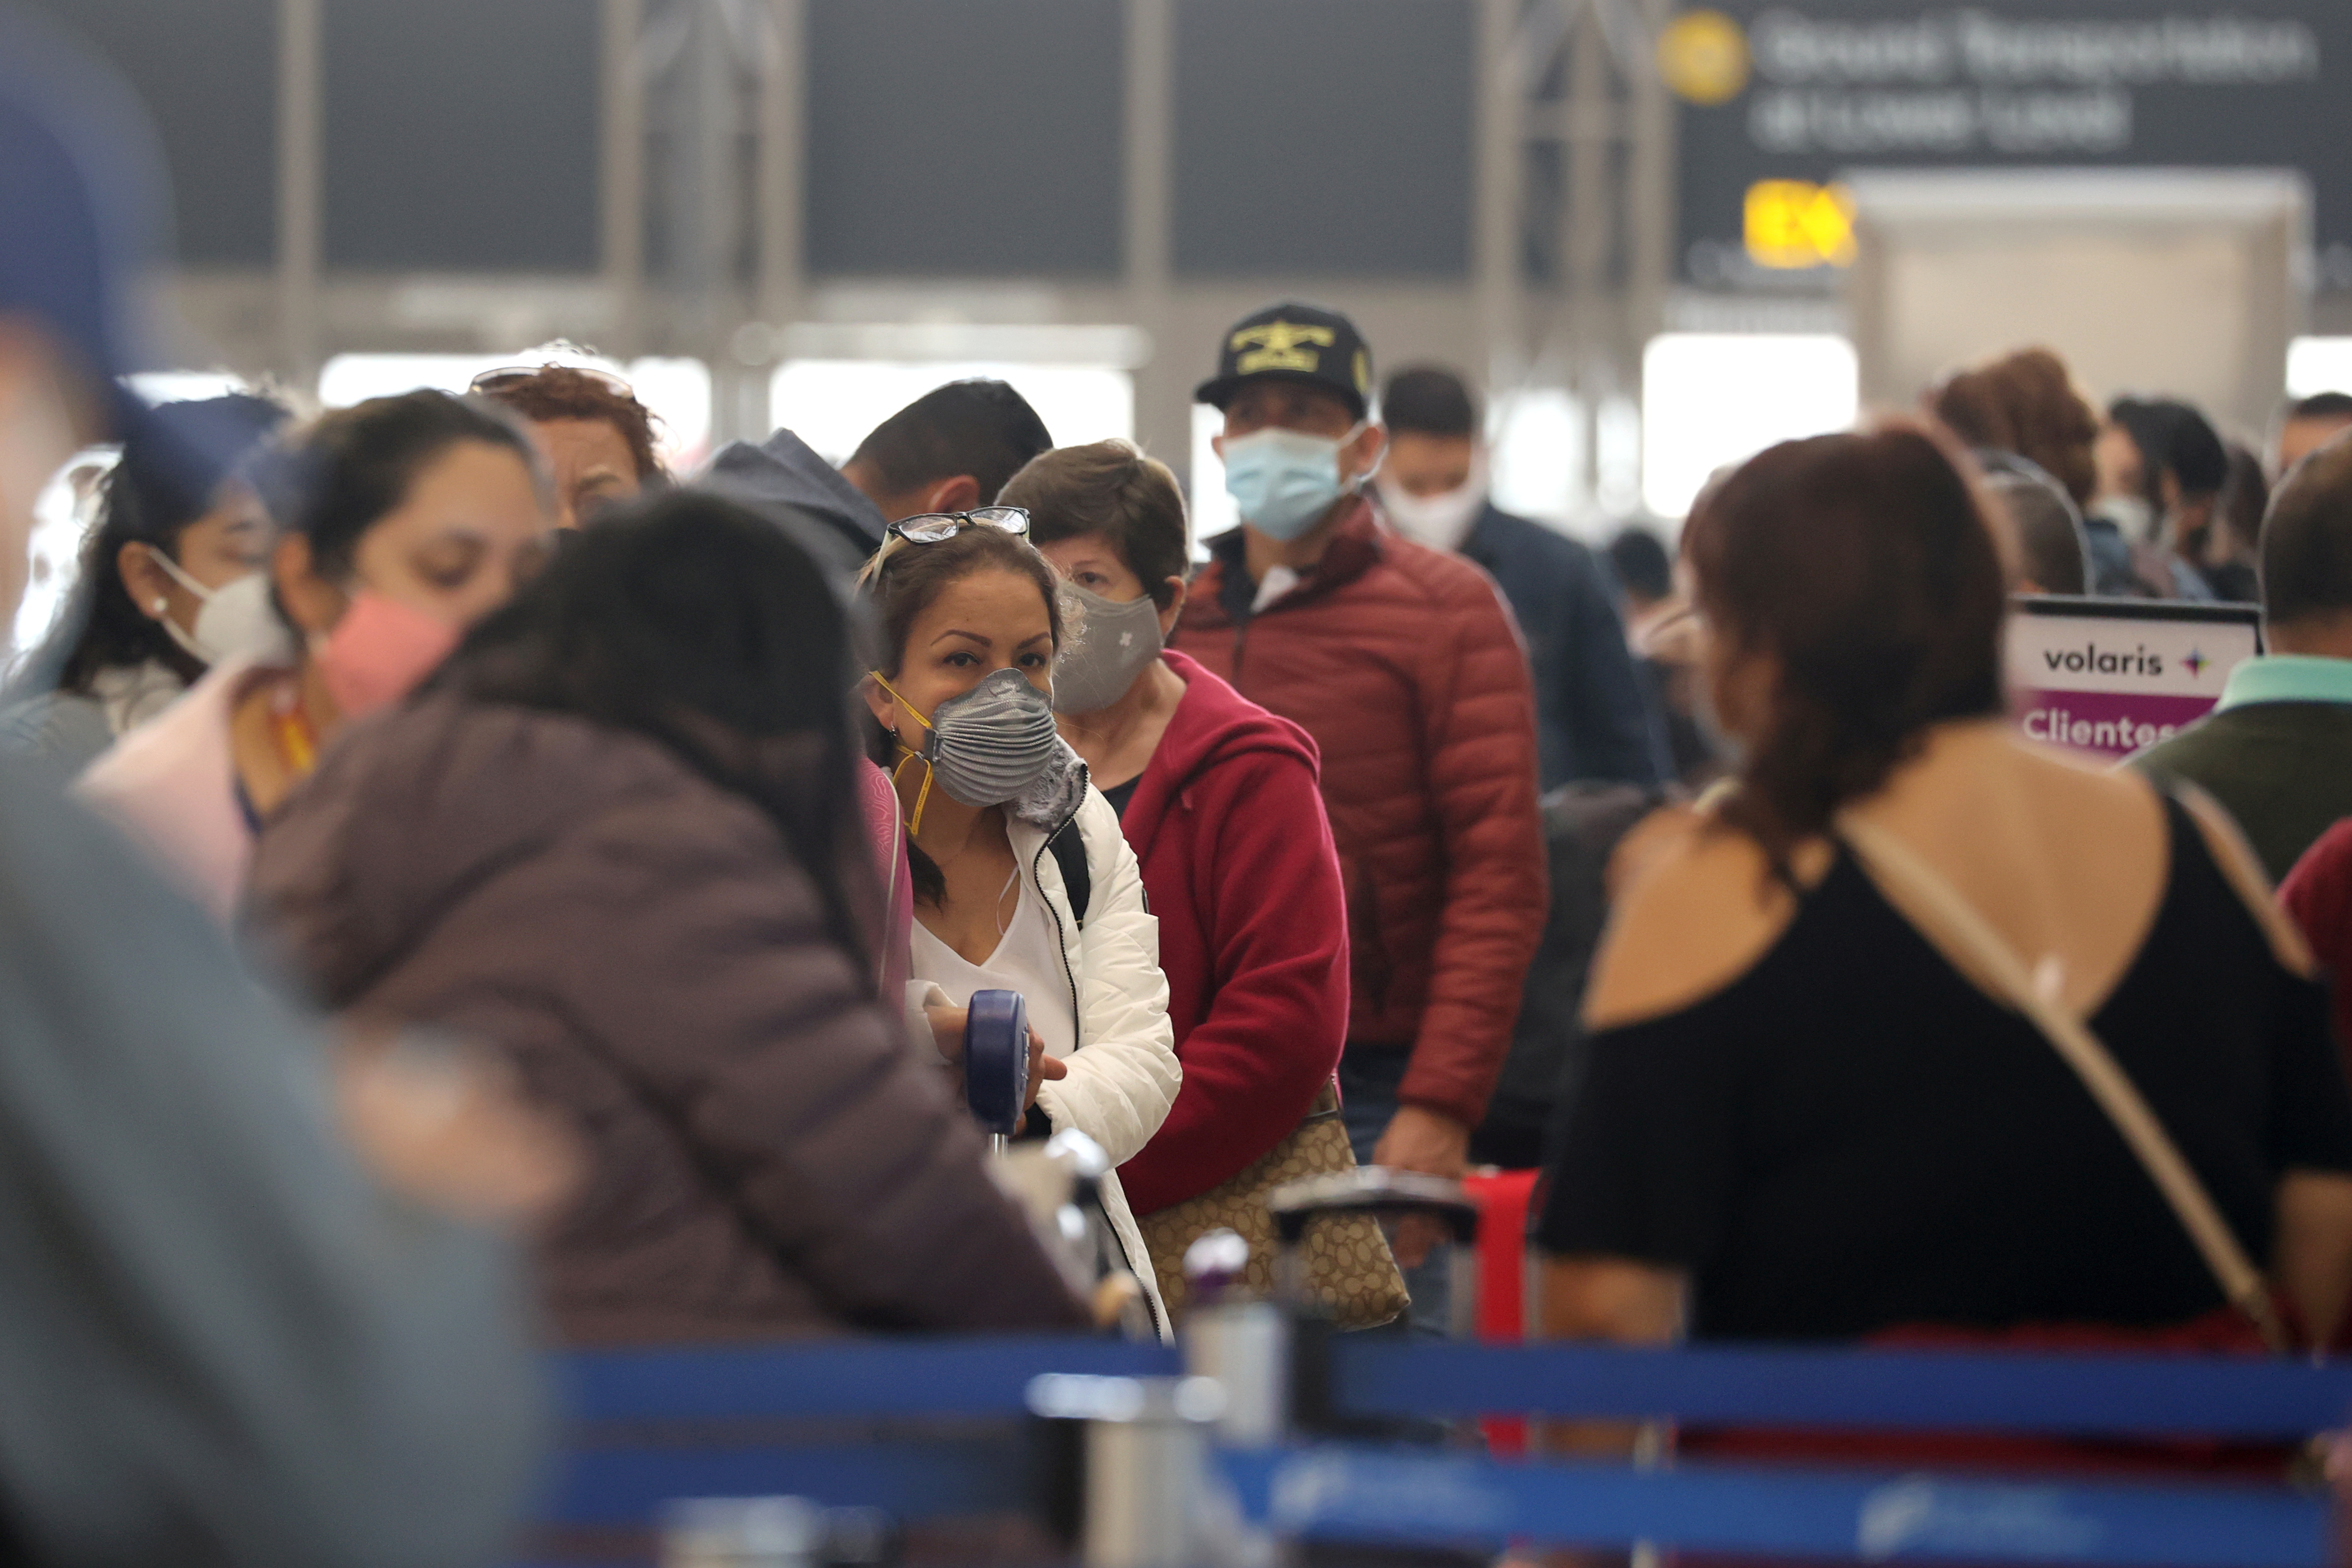 Passengers wait to check in at Tom Bradley international terminal at LAX airport, as the global outbreak of the coronavirus disease (COVID-19) continues, in Los Angeles, California, U.S., November 23, 2020. REUTERS/Lucy Nicholson